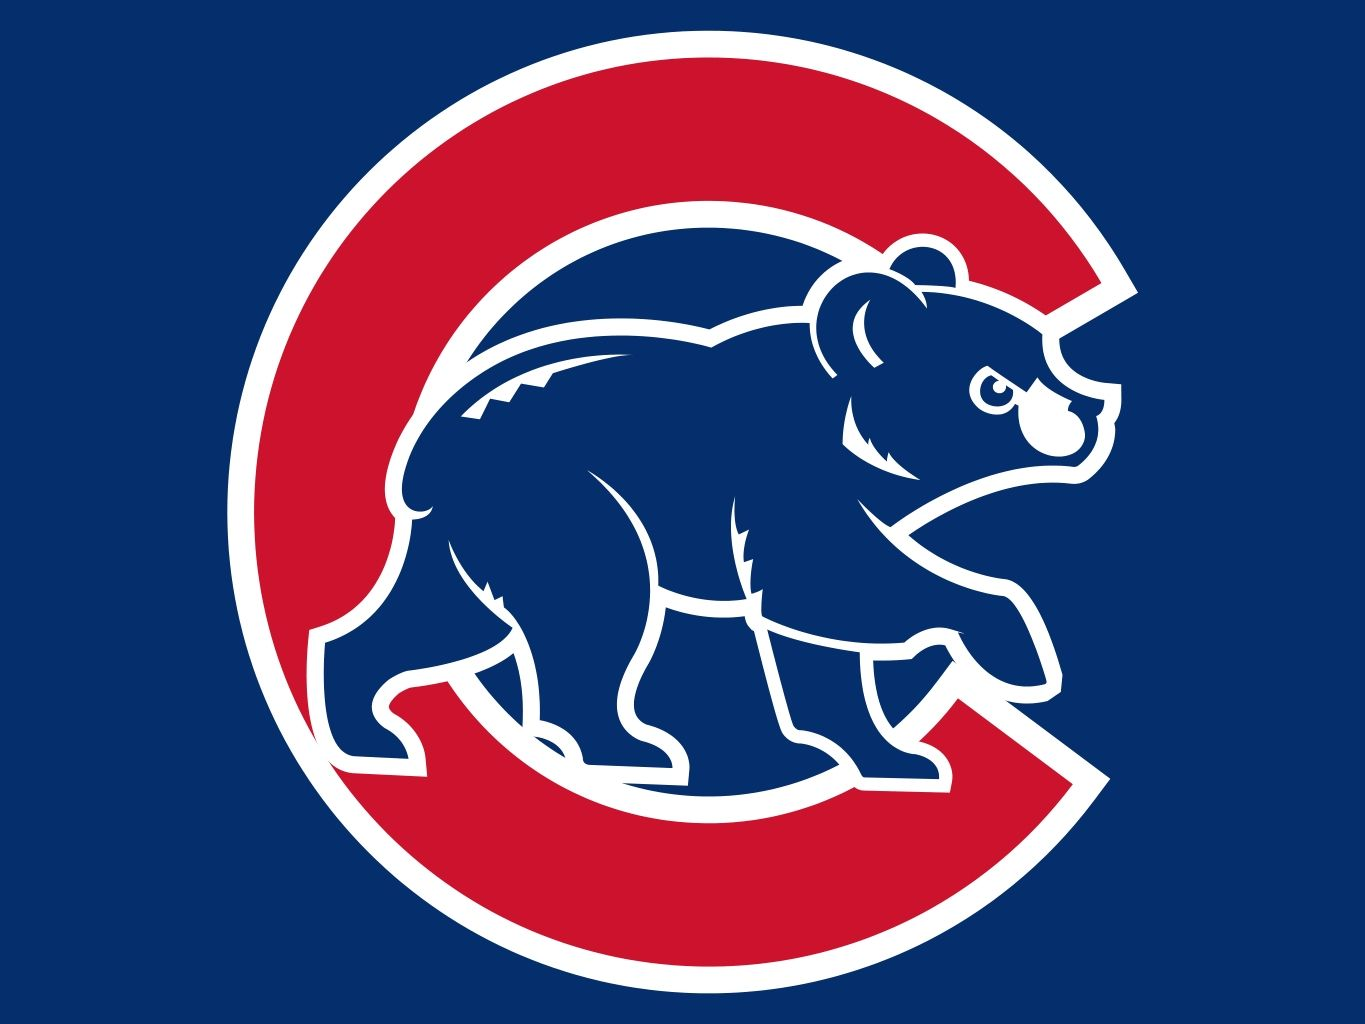 chicago cubs are an american professional baseball